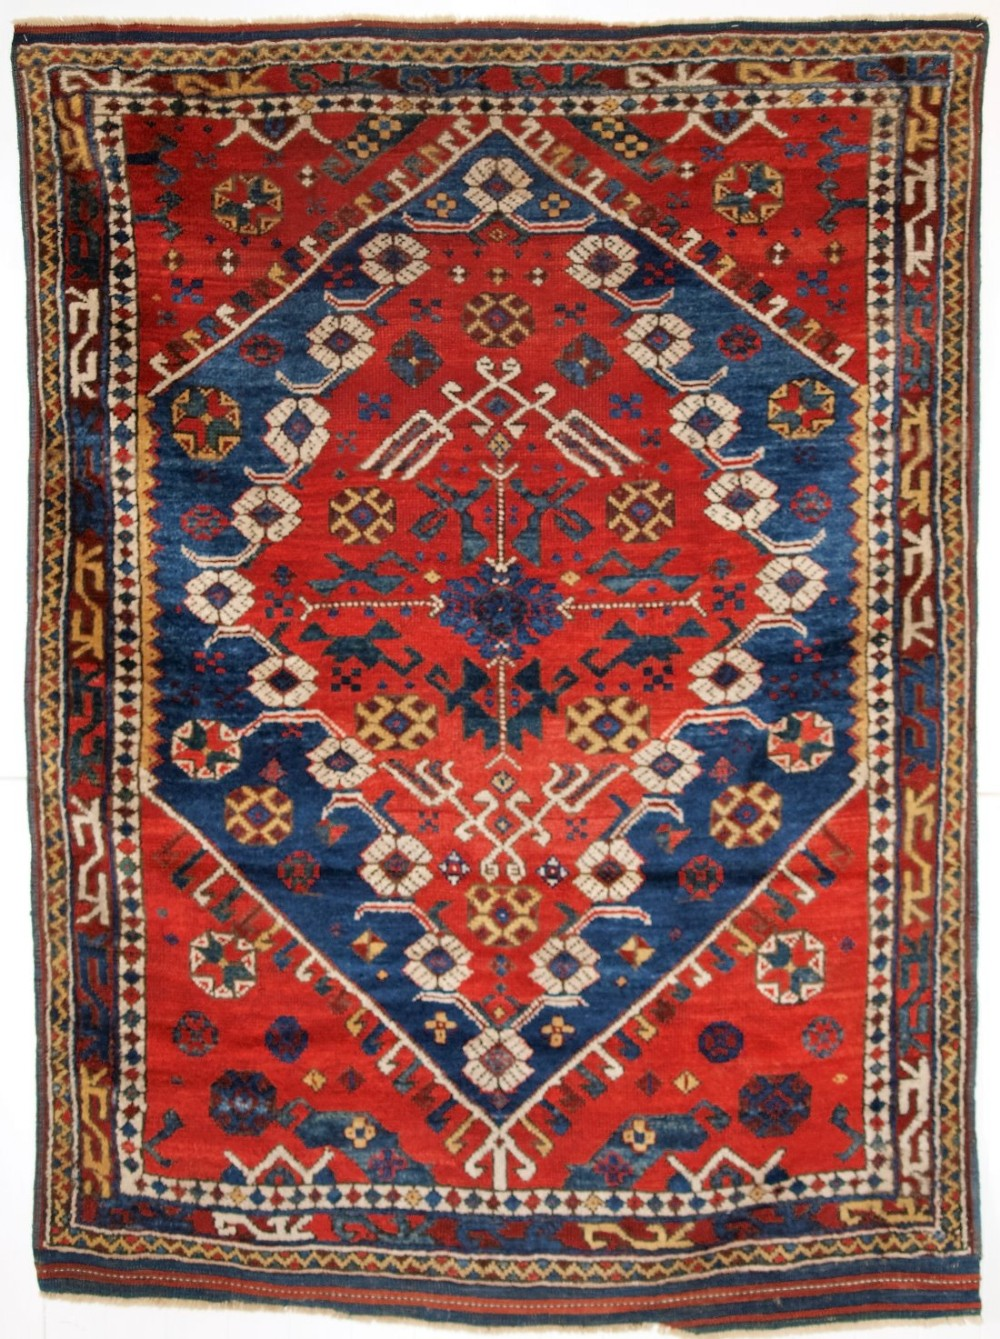 antique turkish bergama region rug classic design and superb colour circa 1880